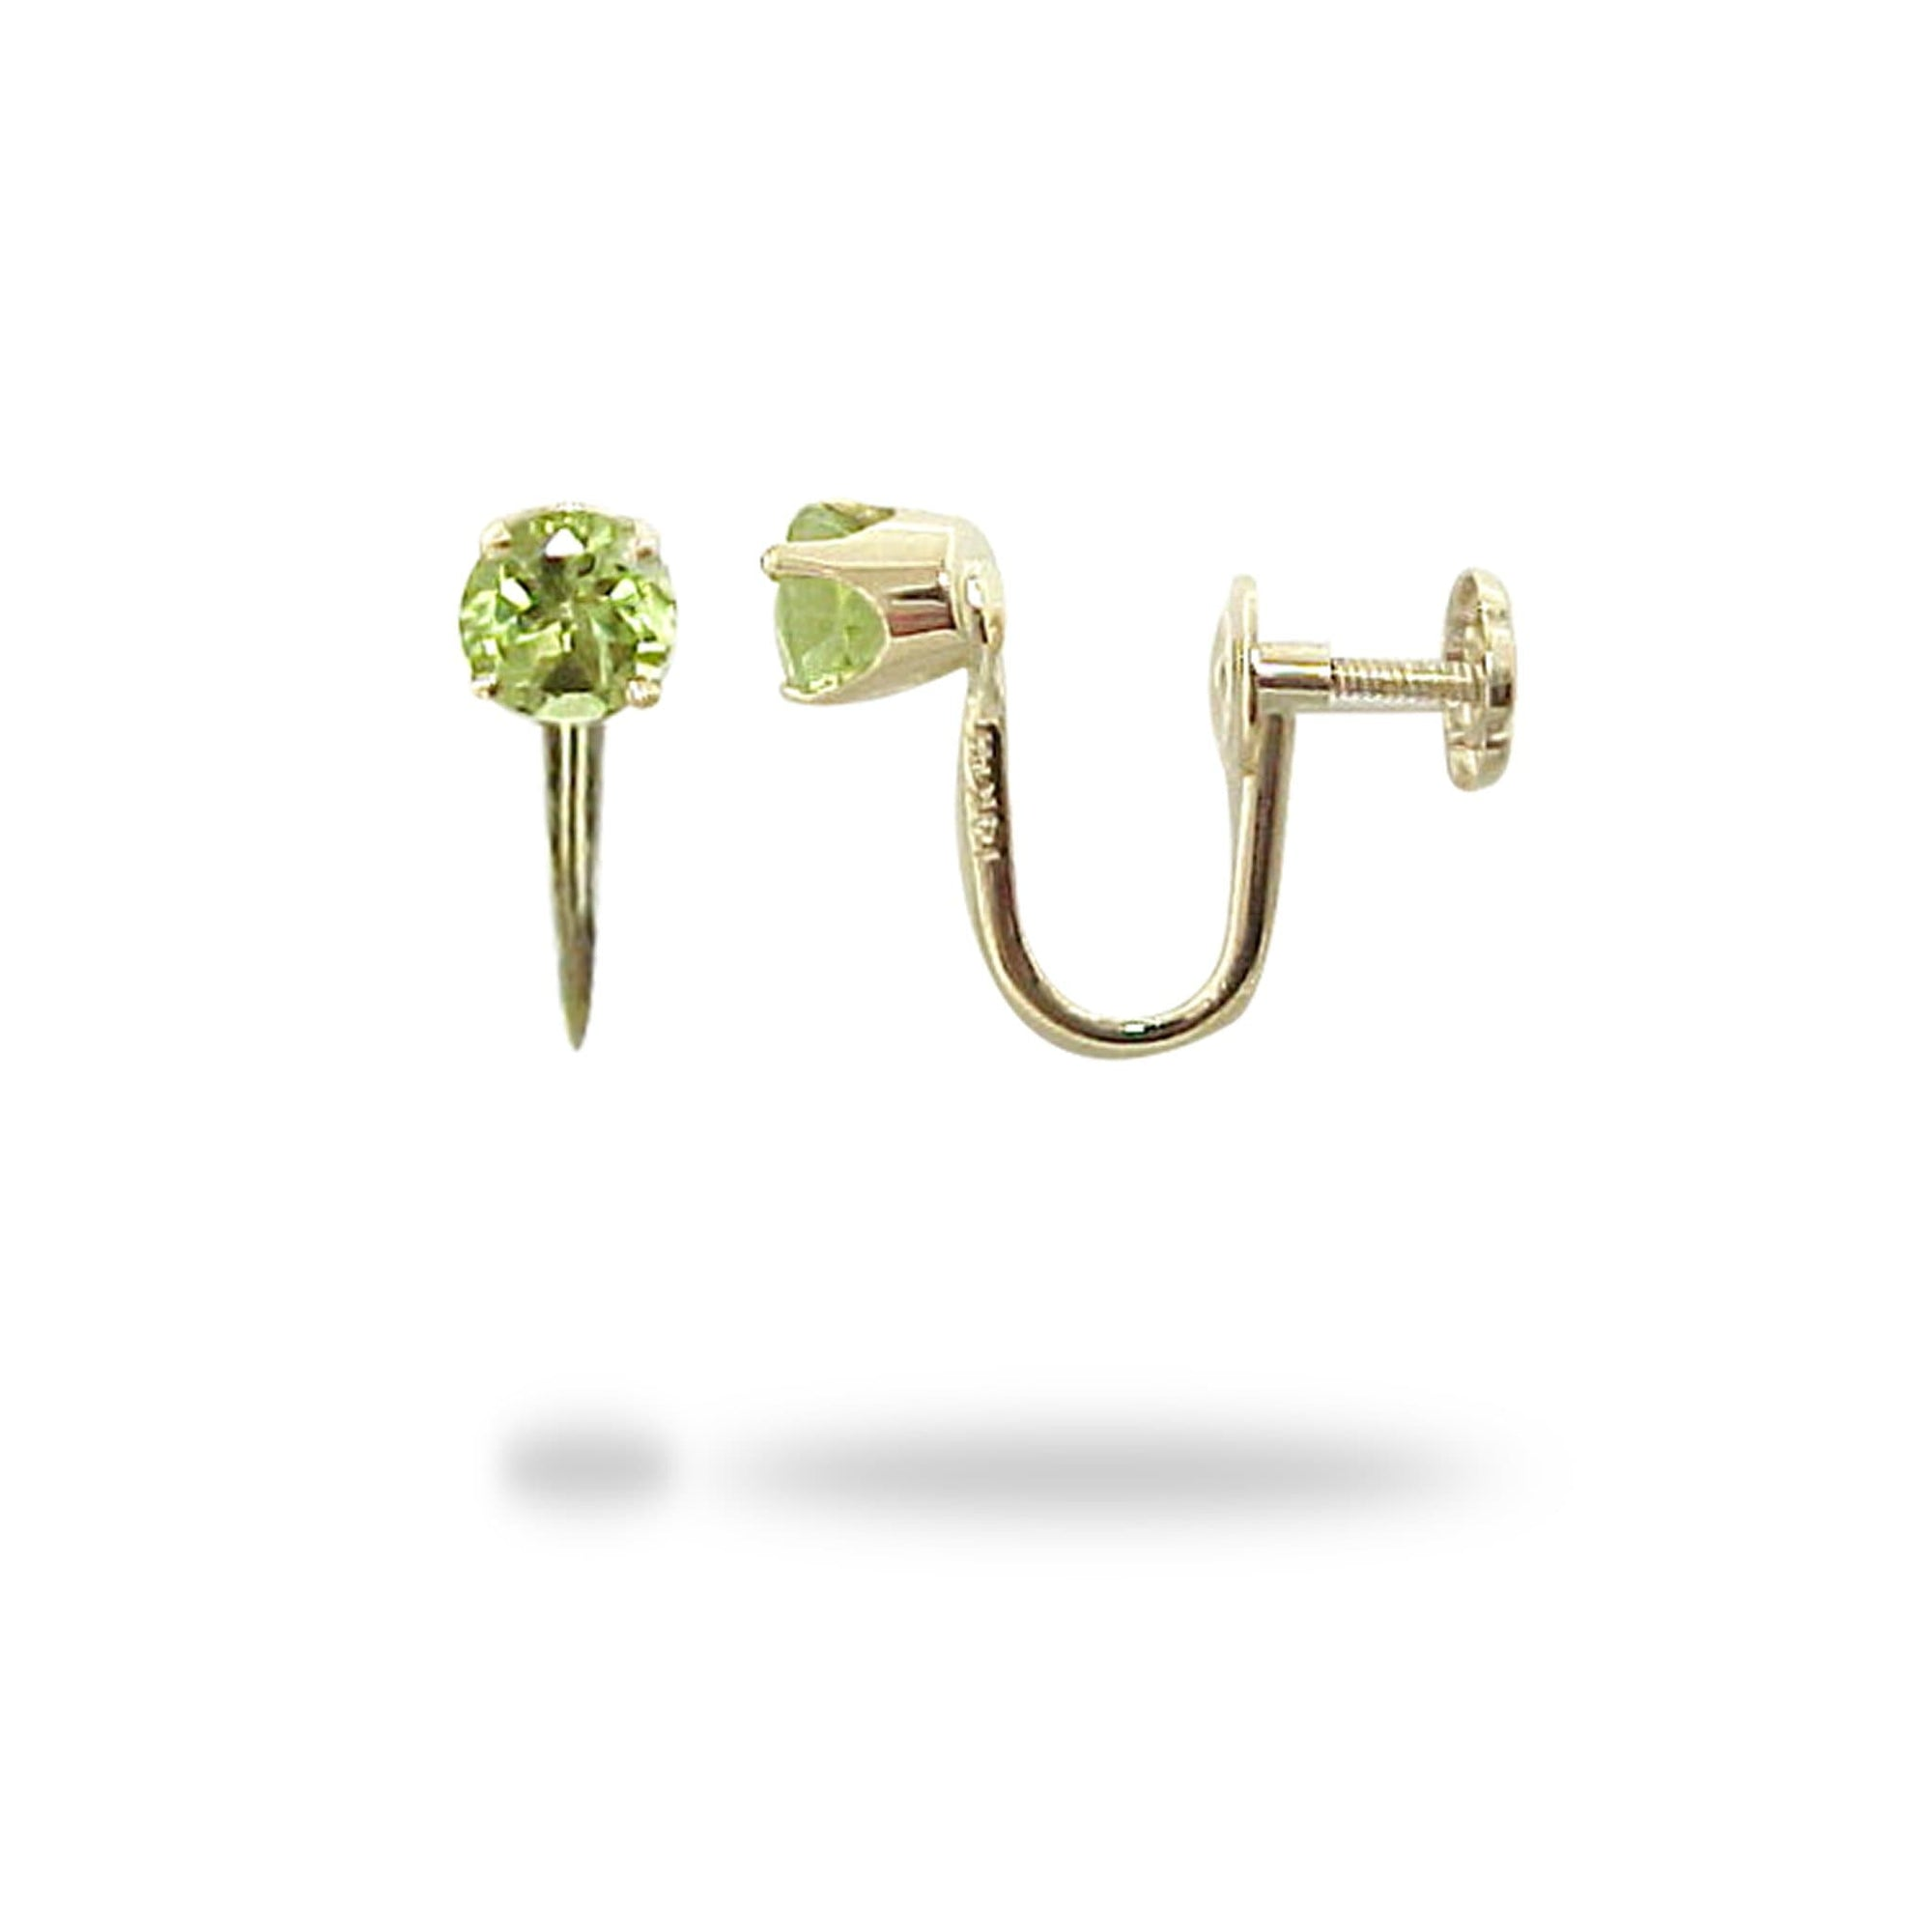 Peridot Clip Earrings in 14K Yellow Gold - Maui Divers Jewelry